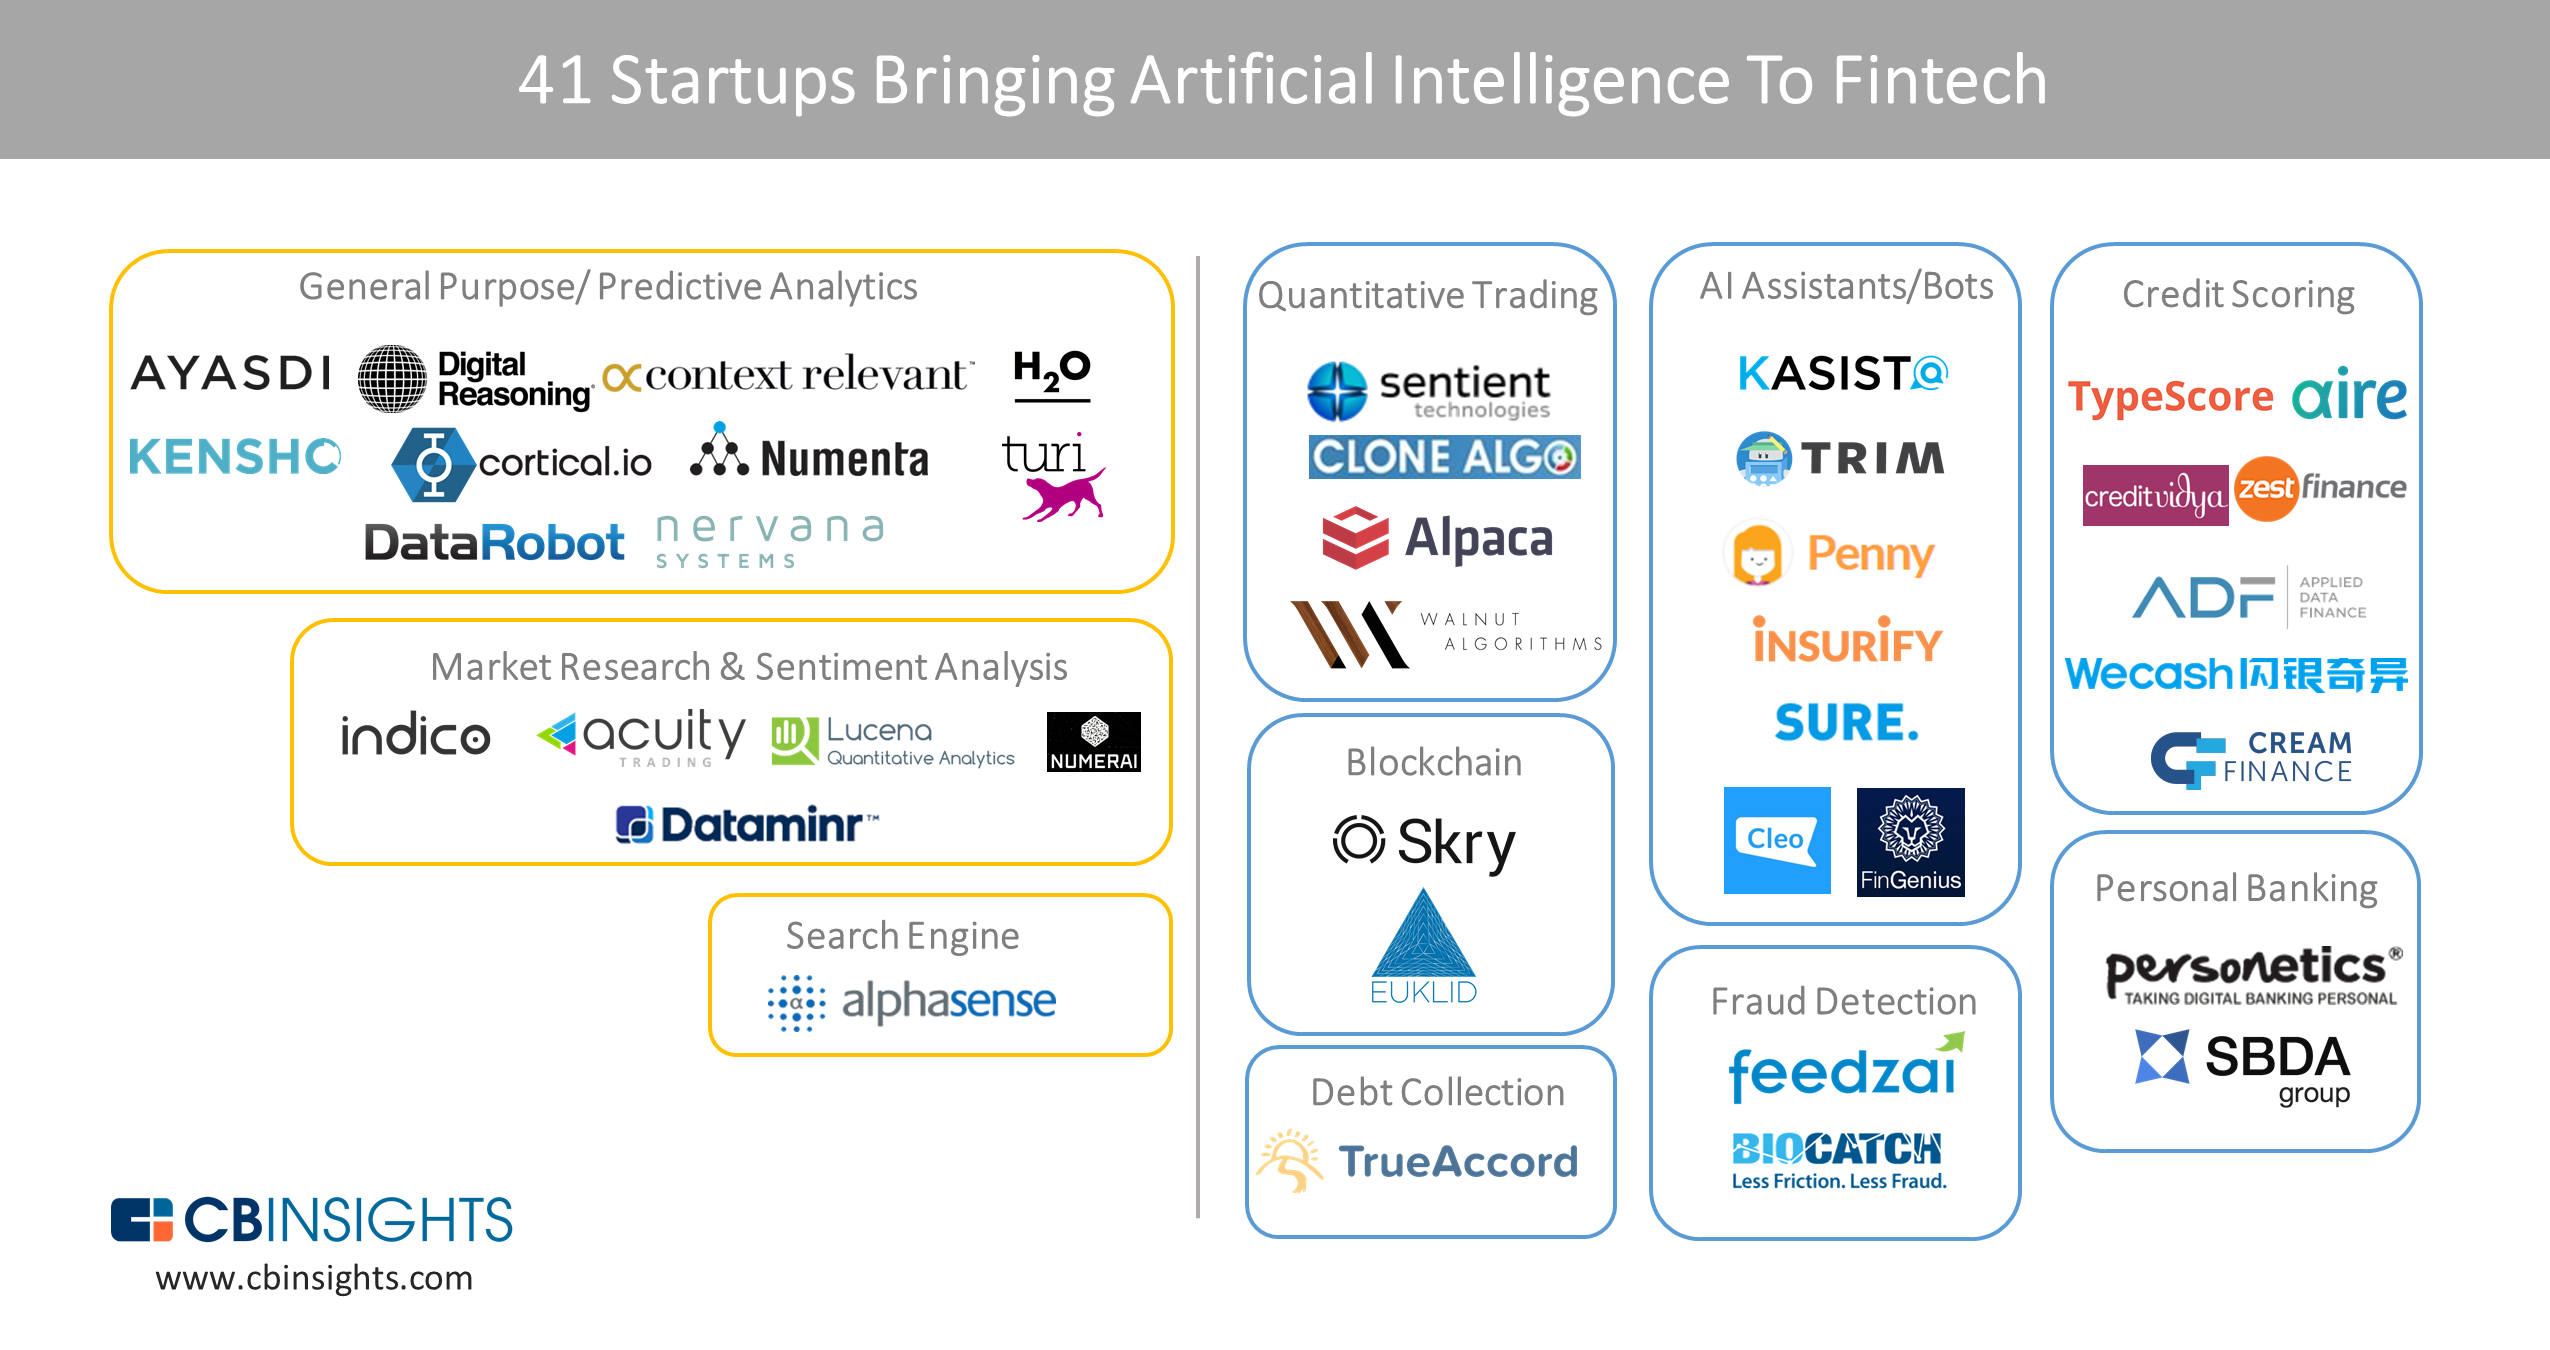 Startups Bringing AI To Fintech